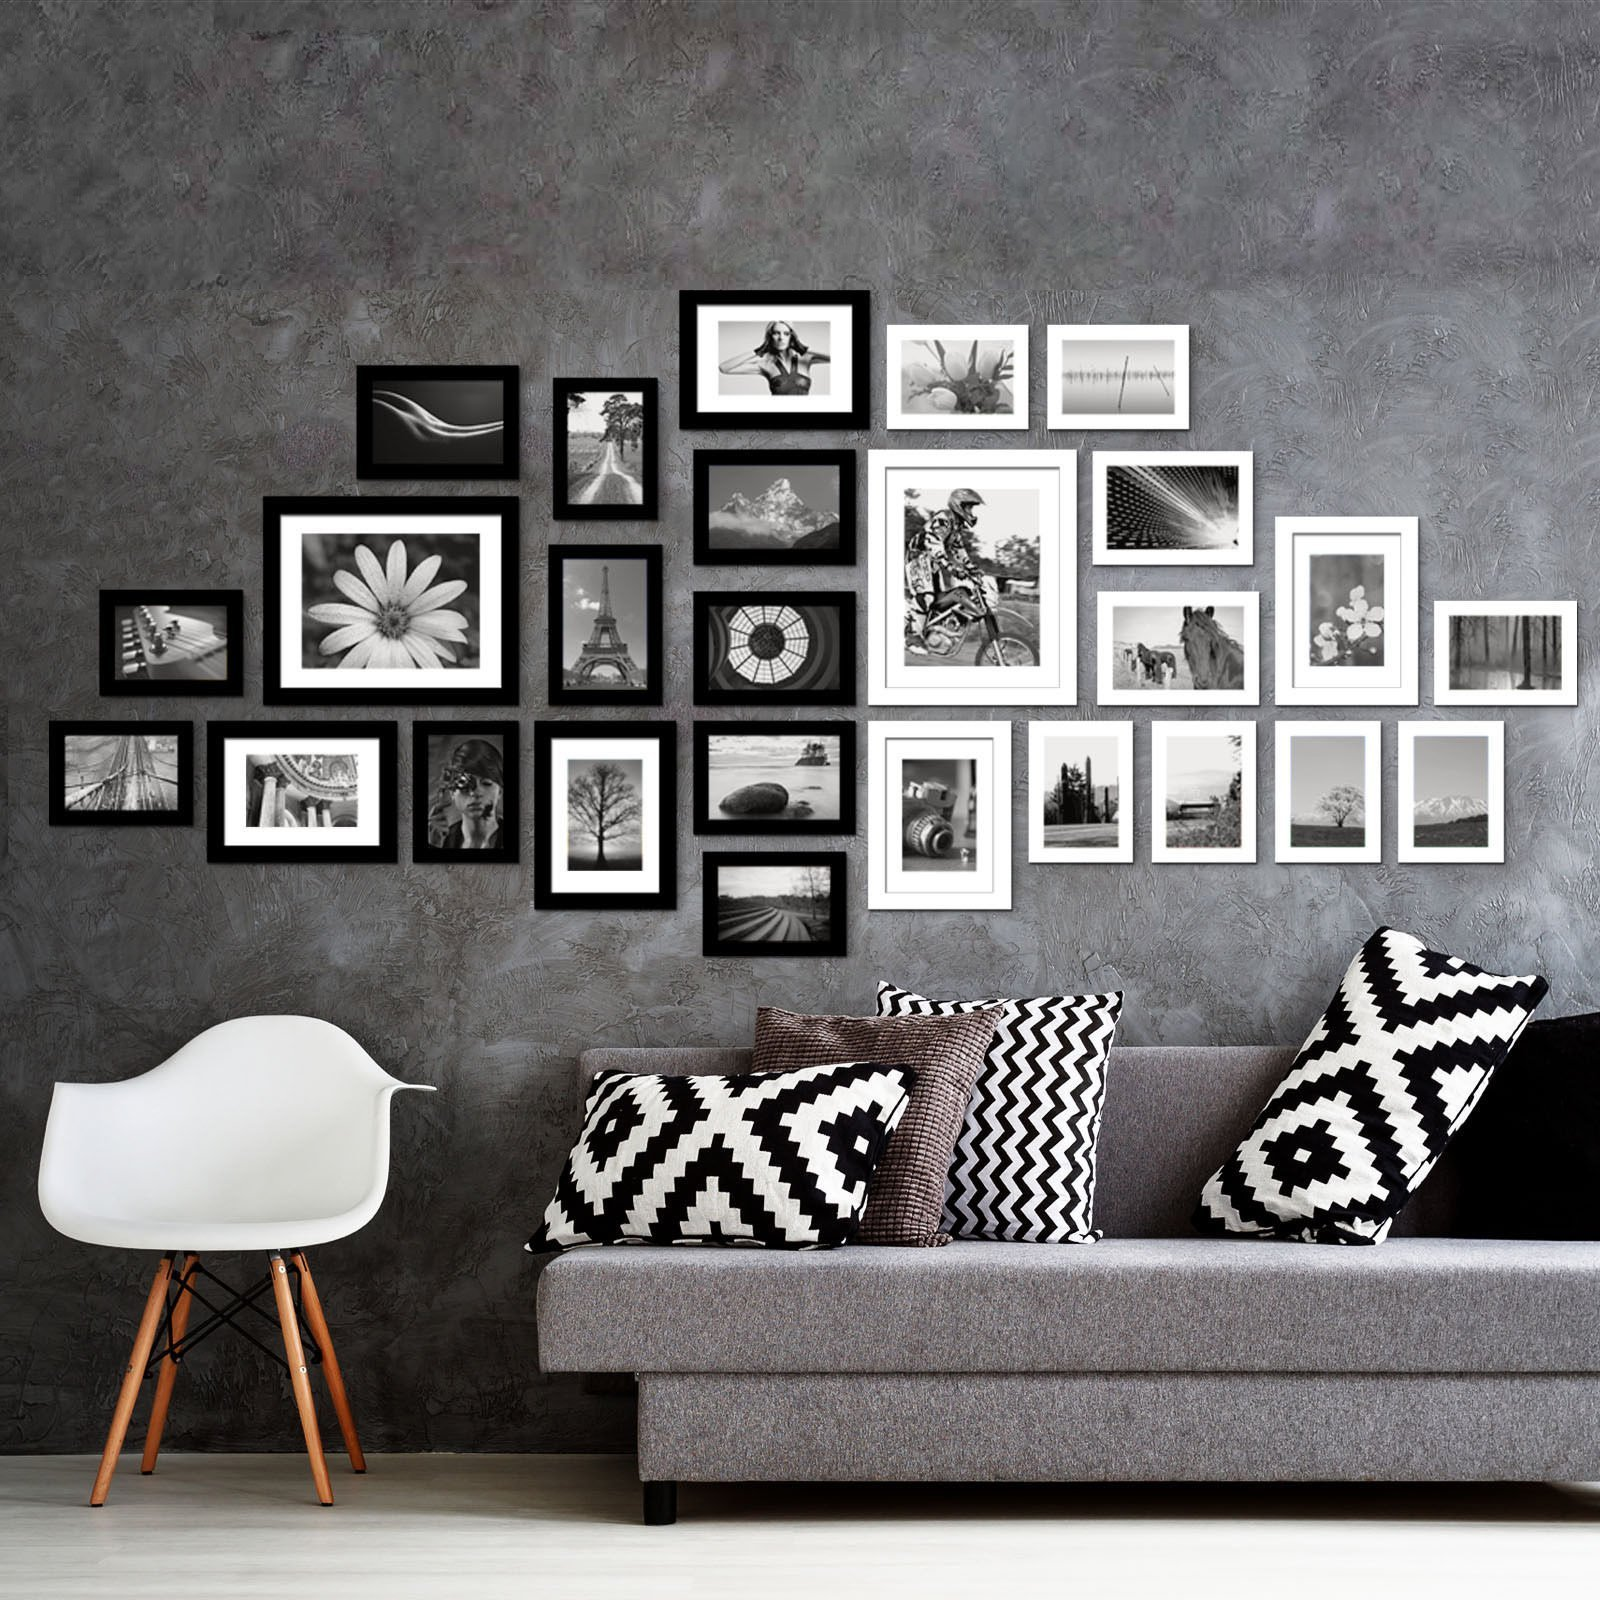 Voilamart Picture Frames Set of 26, Multi Pack Photo Frame Set Wall Gallery Kit - Display Two 8x10 in, Five 5x7 in, Nineteen 4x6 in, with Wall Template and Hanging Hardware, Black White by Voilamart